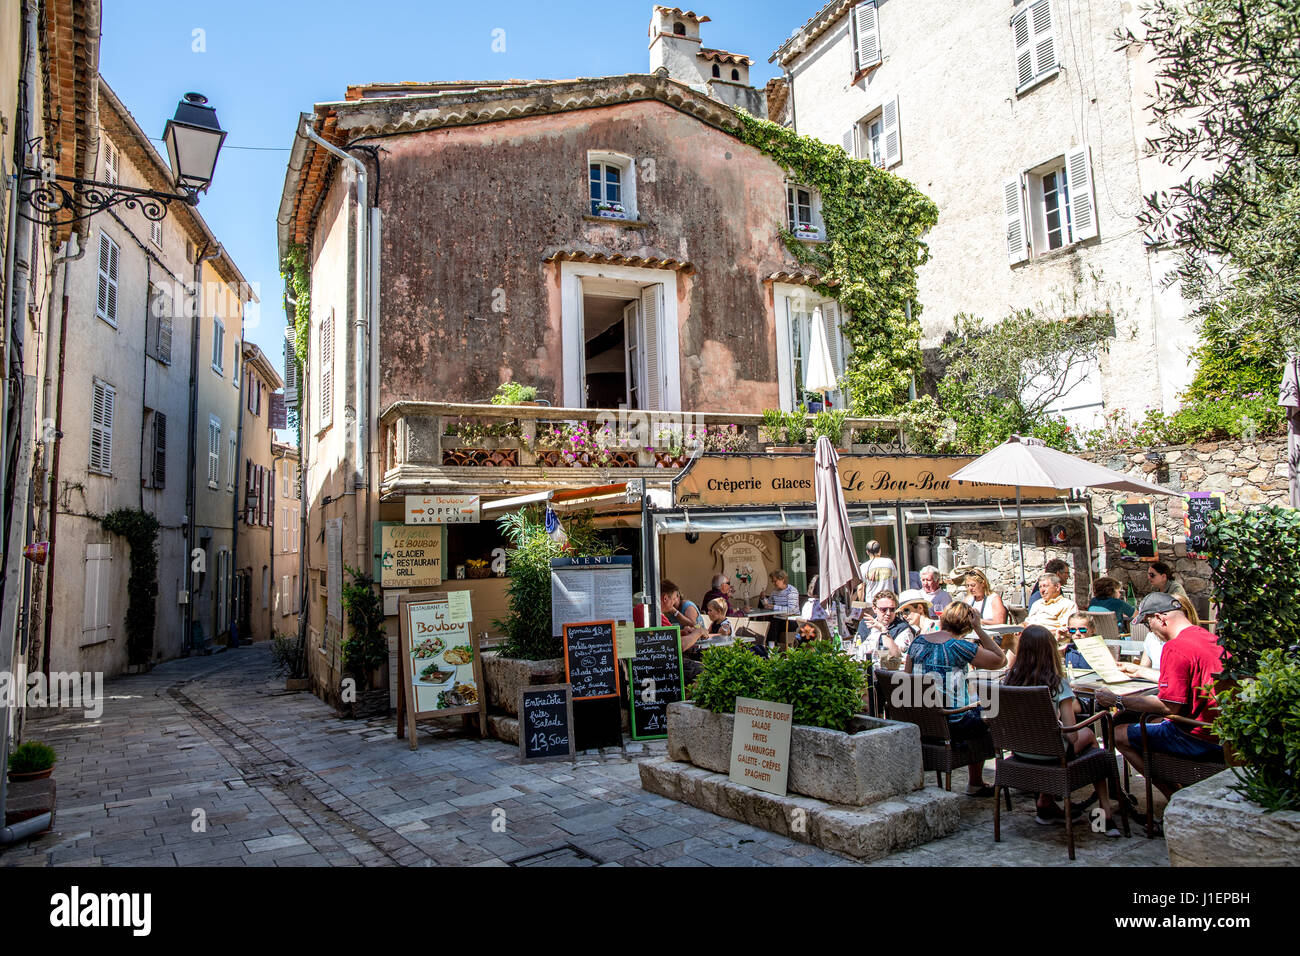 restaurant in grimaud medieval village cote d 39 azure france stock photo 138622501 alamy. Black Bedroom Furniture Sets. Home Design Ideas